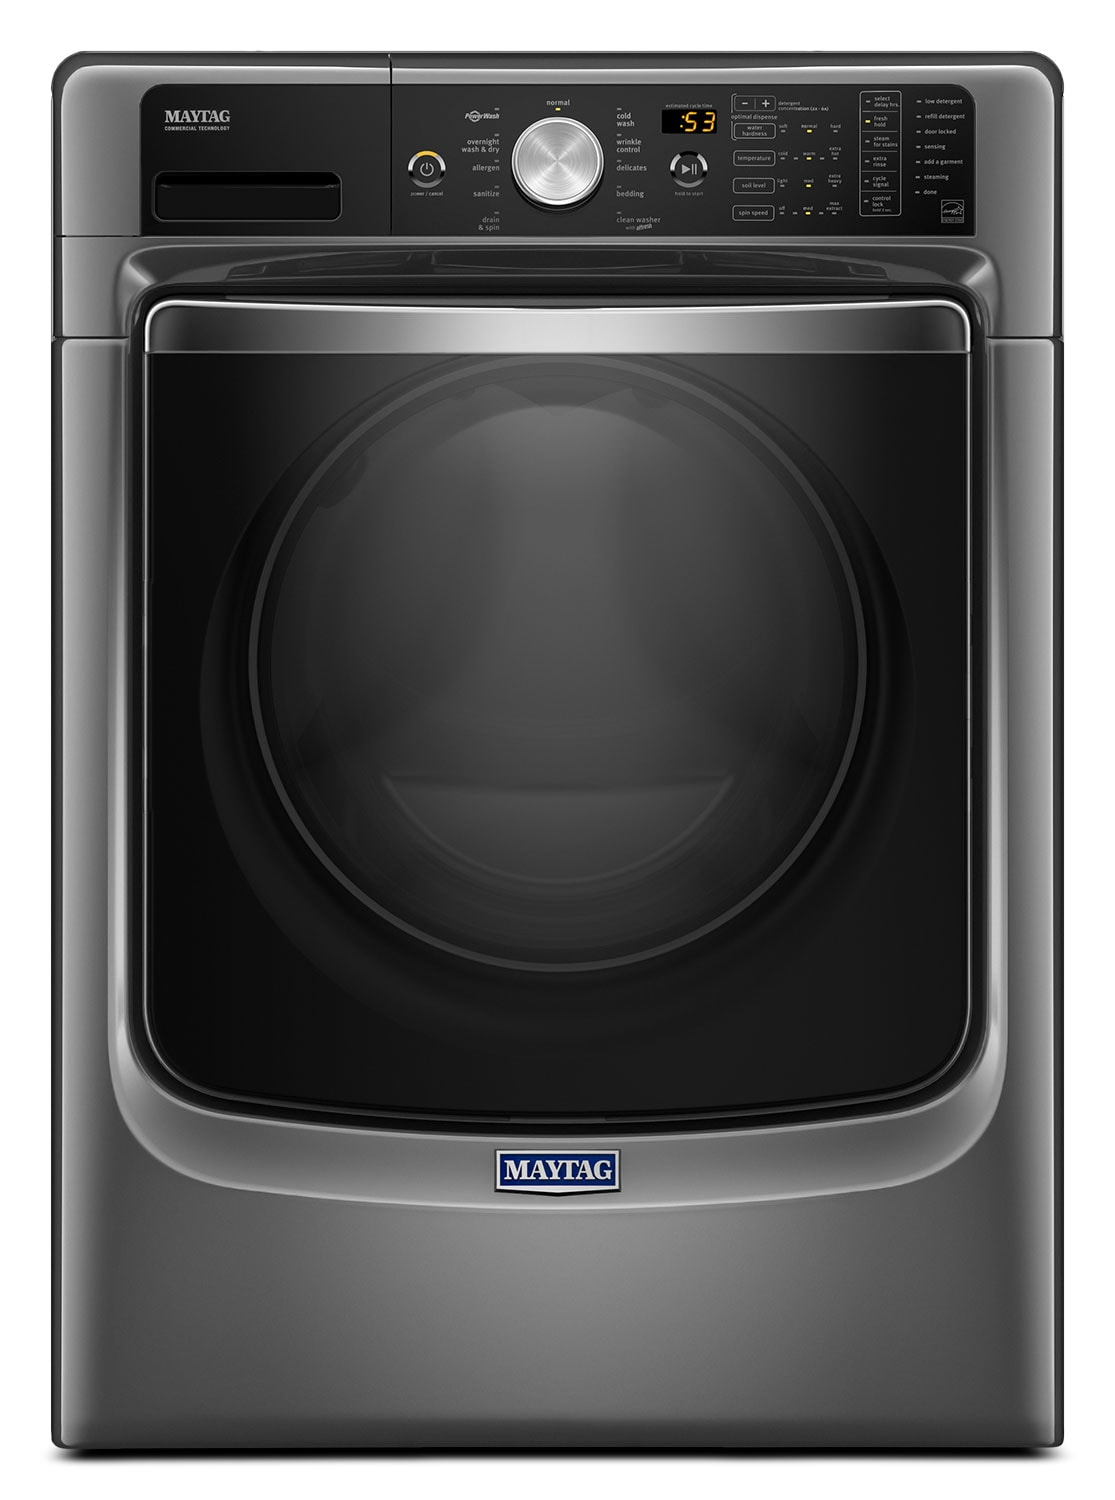 Maytag Metallic Slate Front-Load Washer w/ PowerWash® System (5.2 Cu. Ft. IEC) - MHW8200FC